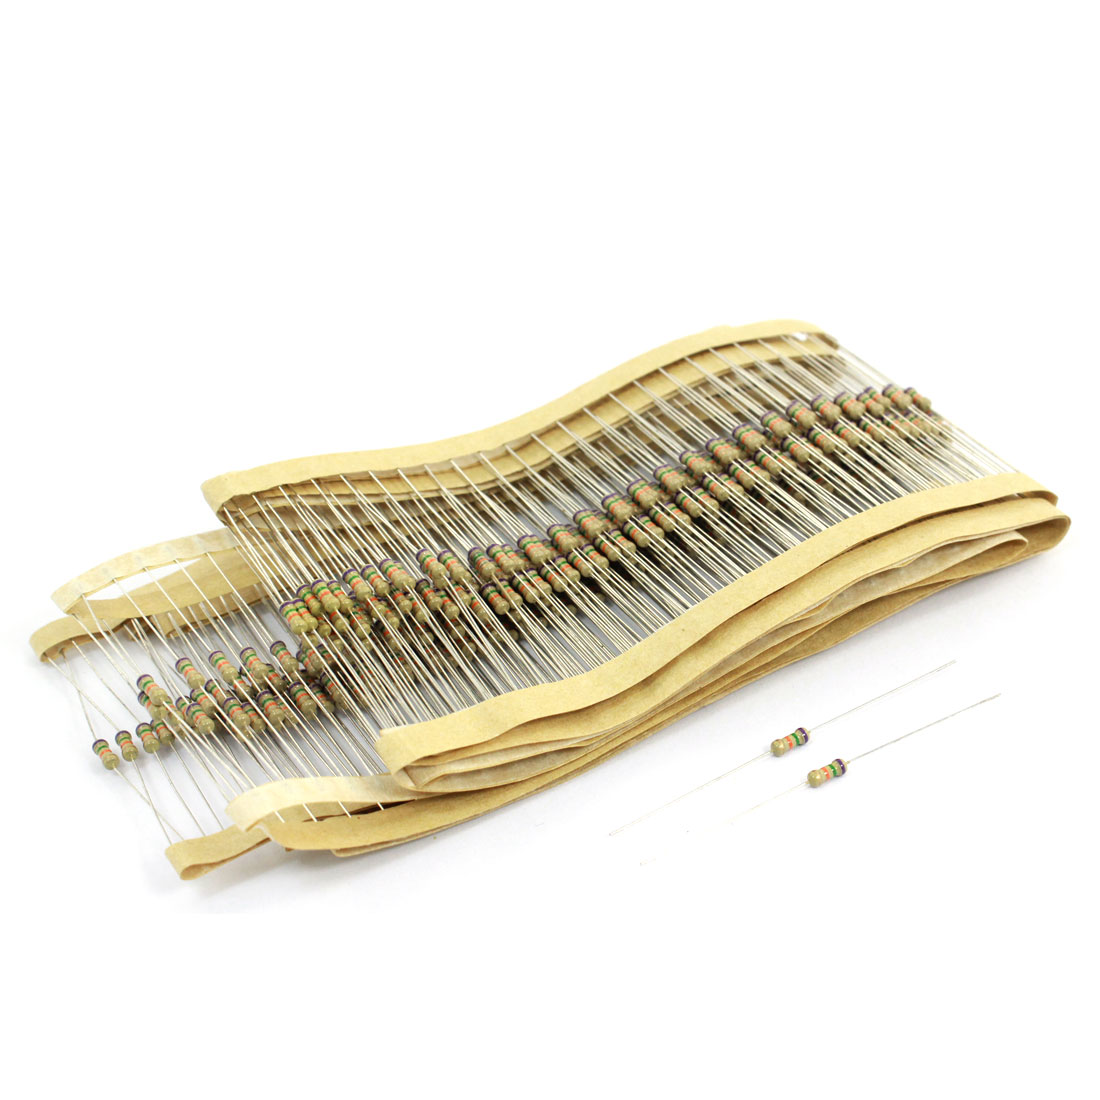 400 Pcs Axial Leads Fixed Carbon Film Resistor 1/4W 0.25W 75K Ohm